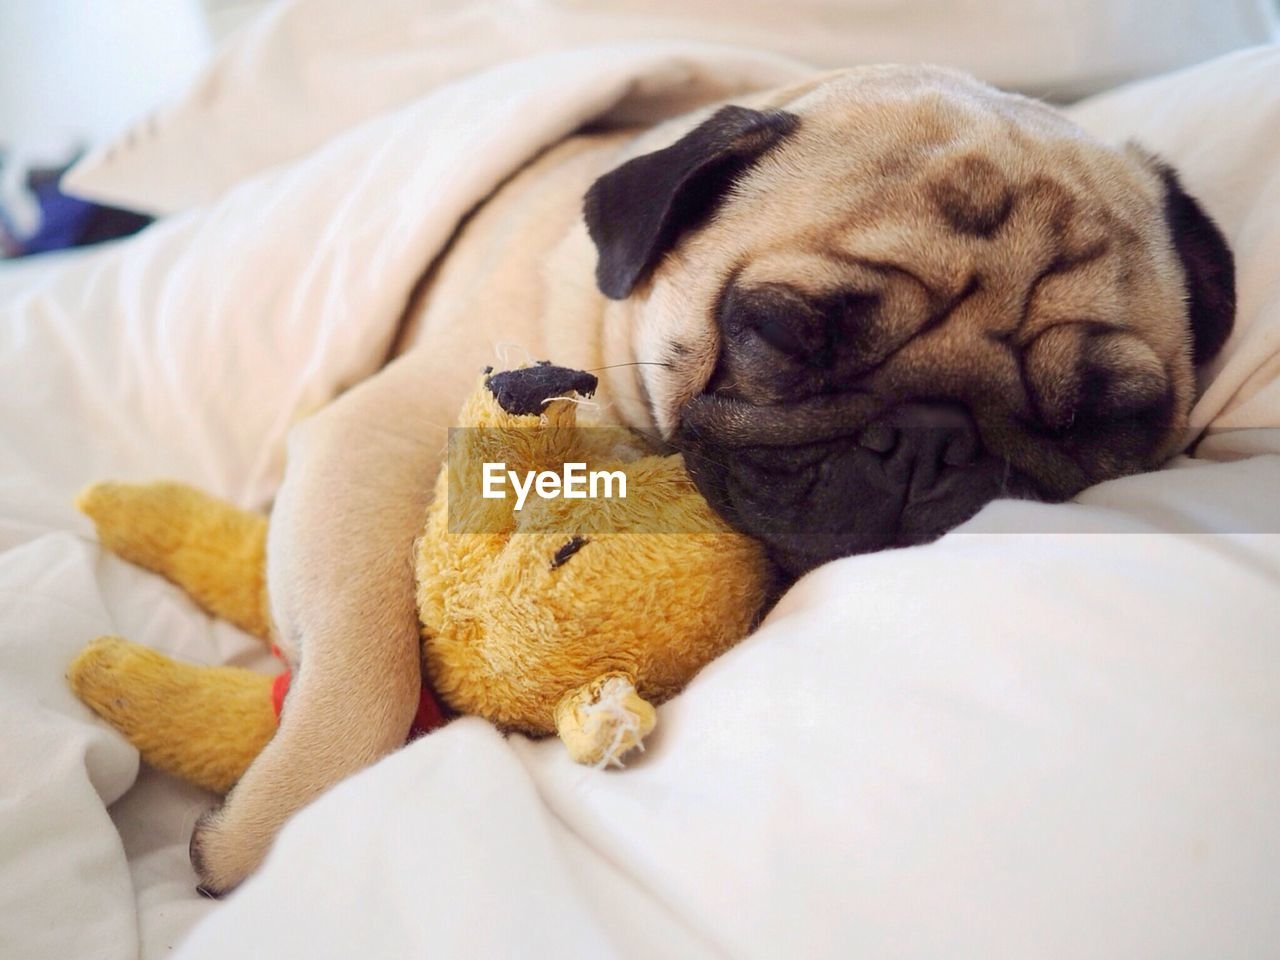 animal themes, canine, dog, mammal, animal, one animal, toy, domestic animals, domestic, pets, furniture, indoors, stuffed toy, relaxation, bed, no people, pug, vertebrate, lap dog, sleeping, teddy bear, small, softness, innocence